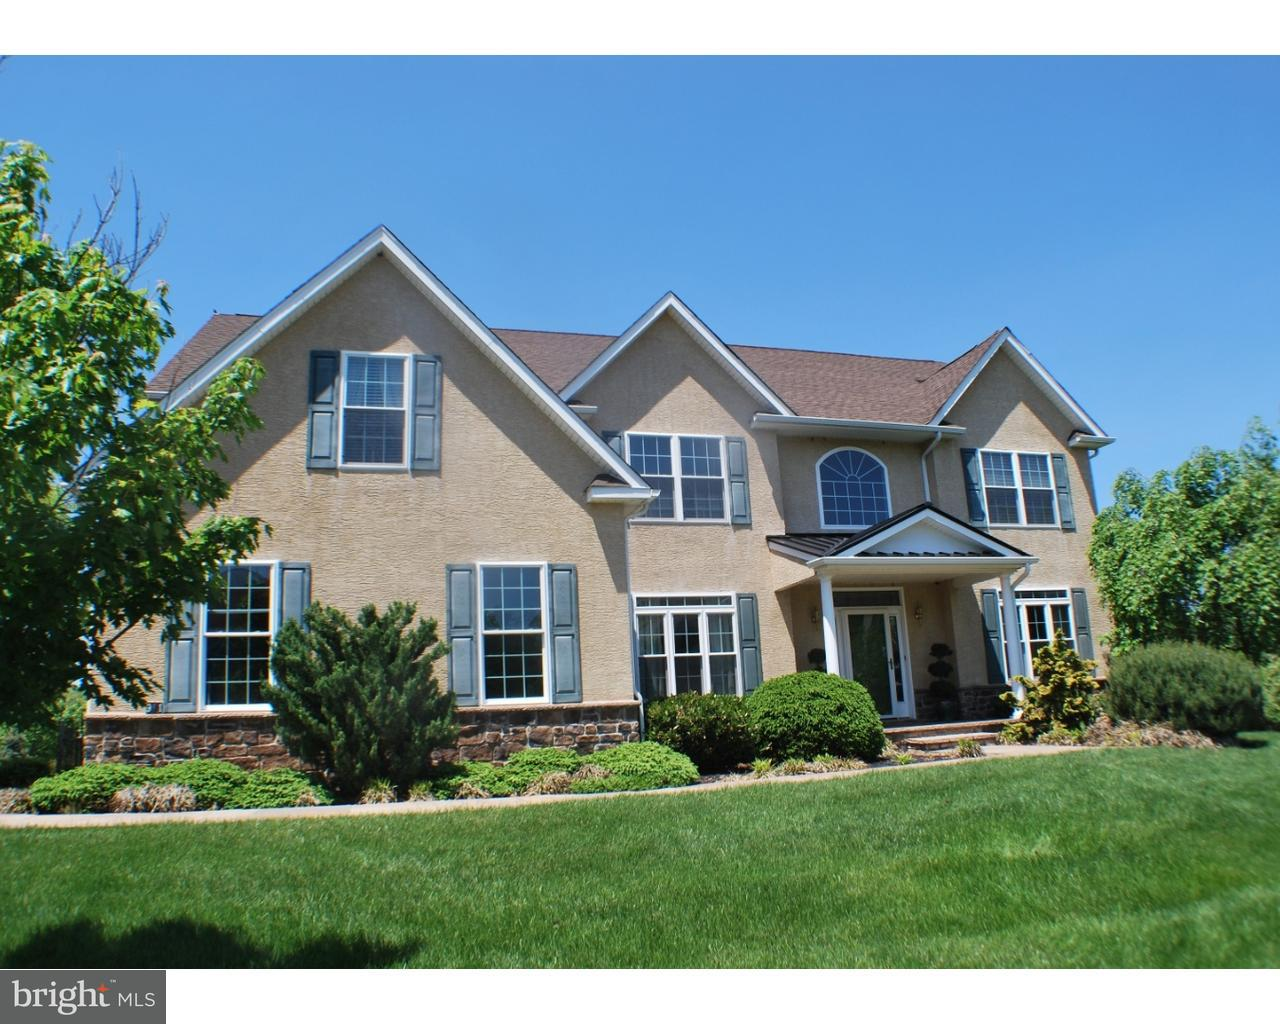 981 GALLERY DR, HARLEYSVILLE - Listed at $649,900,